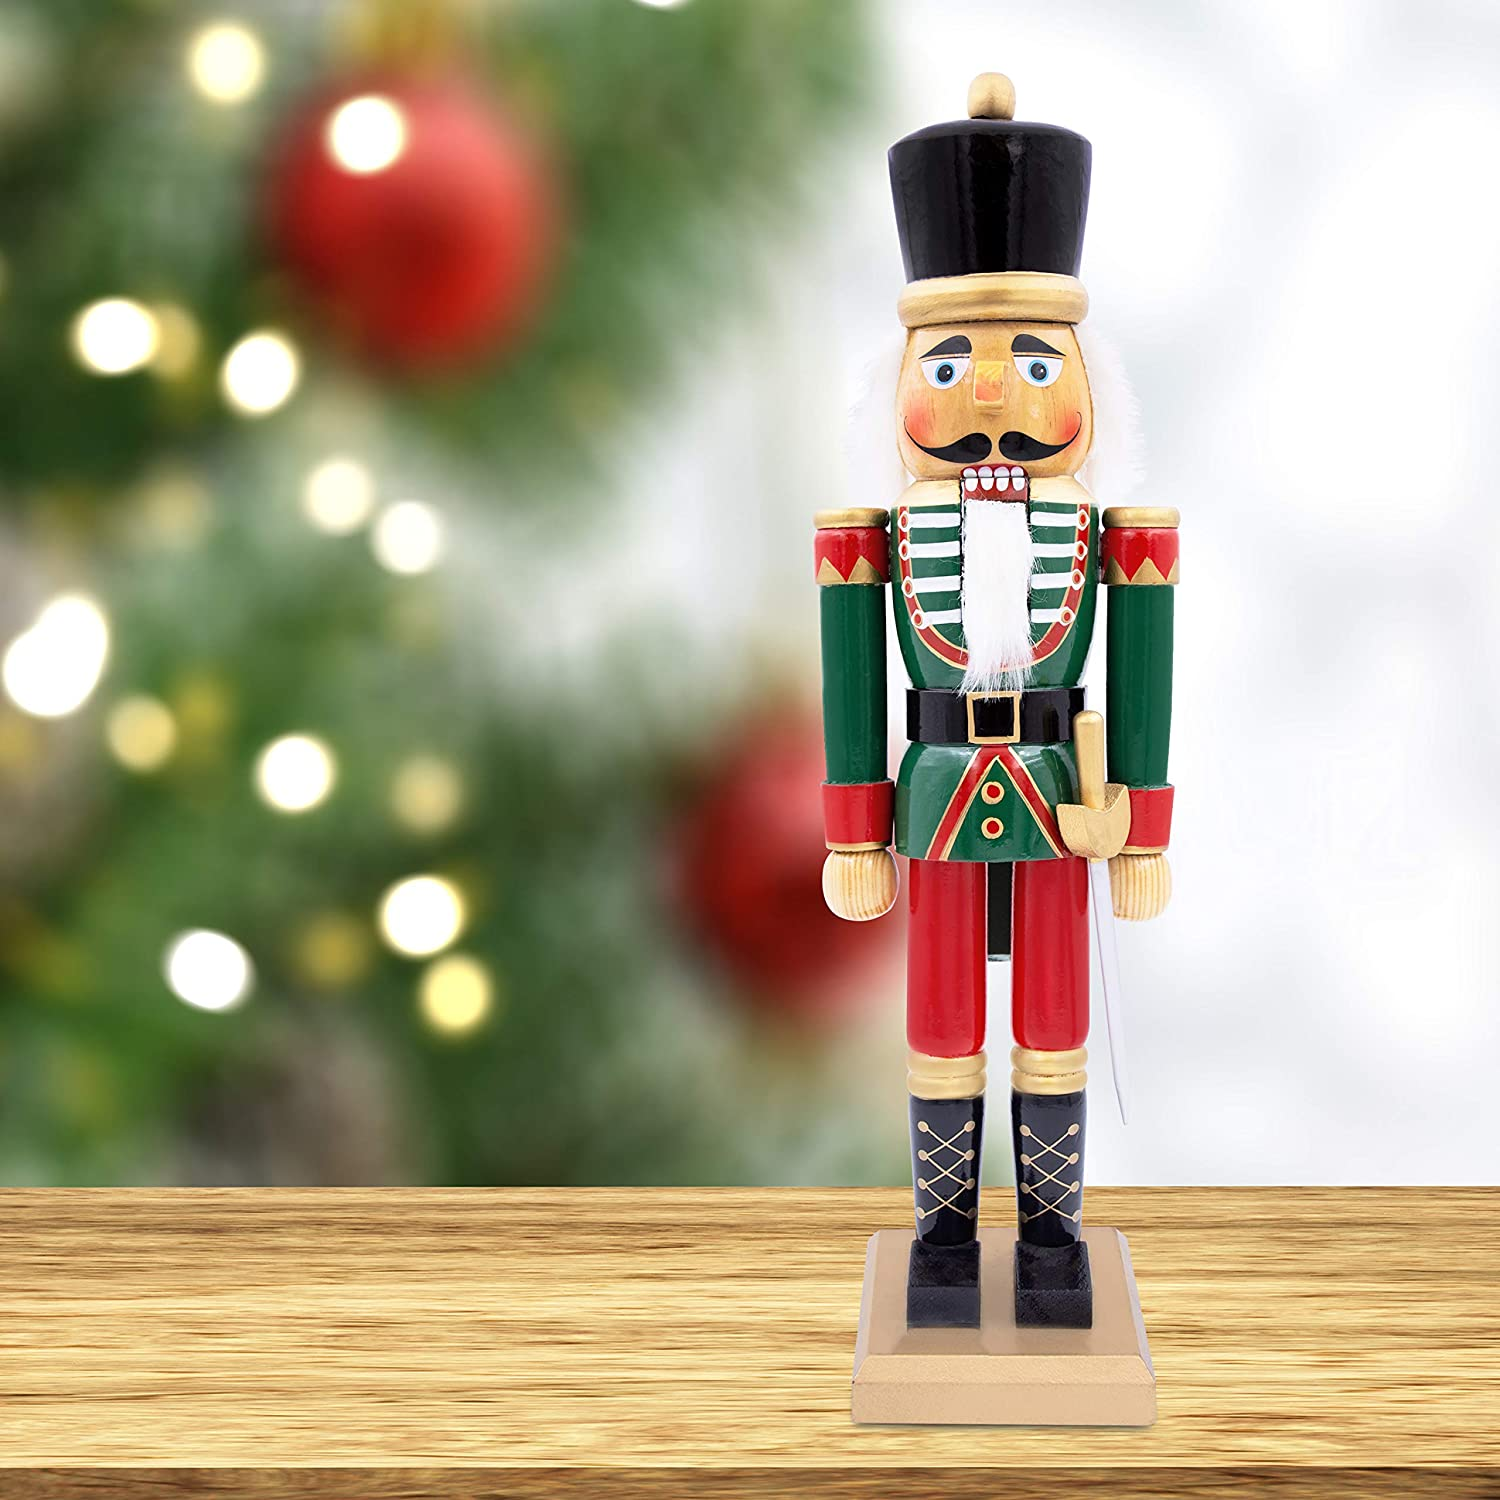 The Christmas Workshop 11 Wooden Nutcracker 11cm Tall  Multi-Coloured  Soldier On Stand  Christmas Decorations, Wood